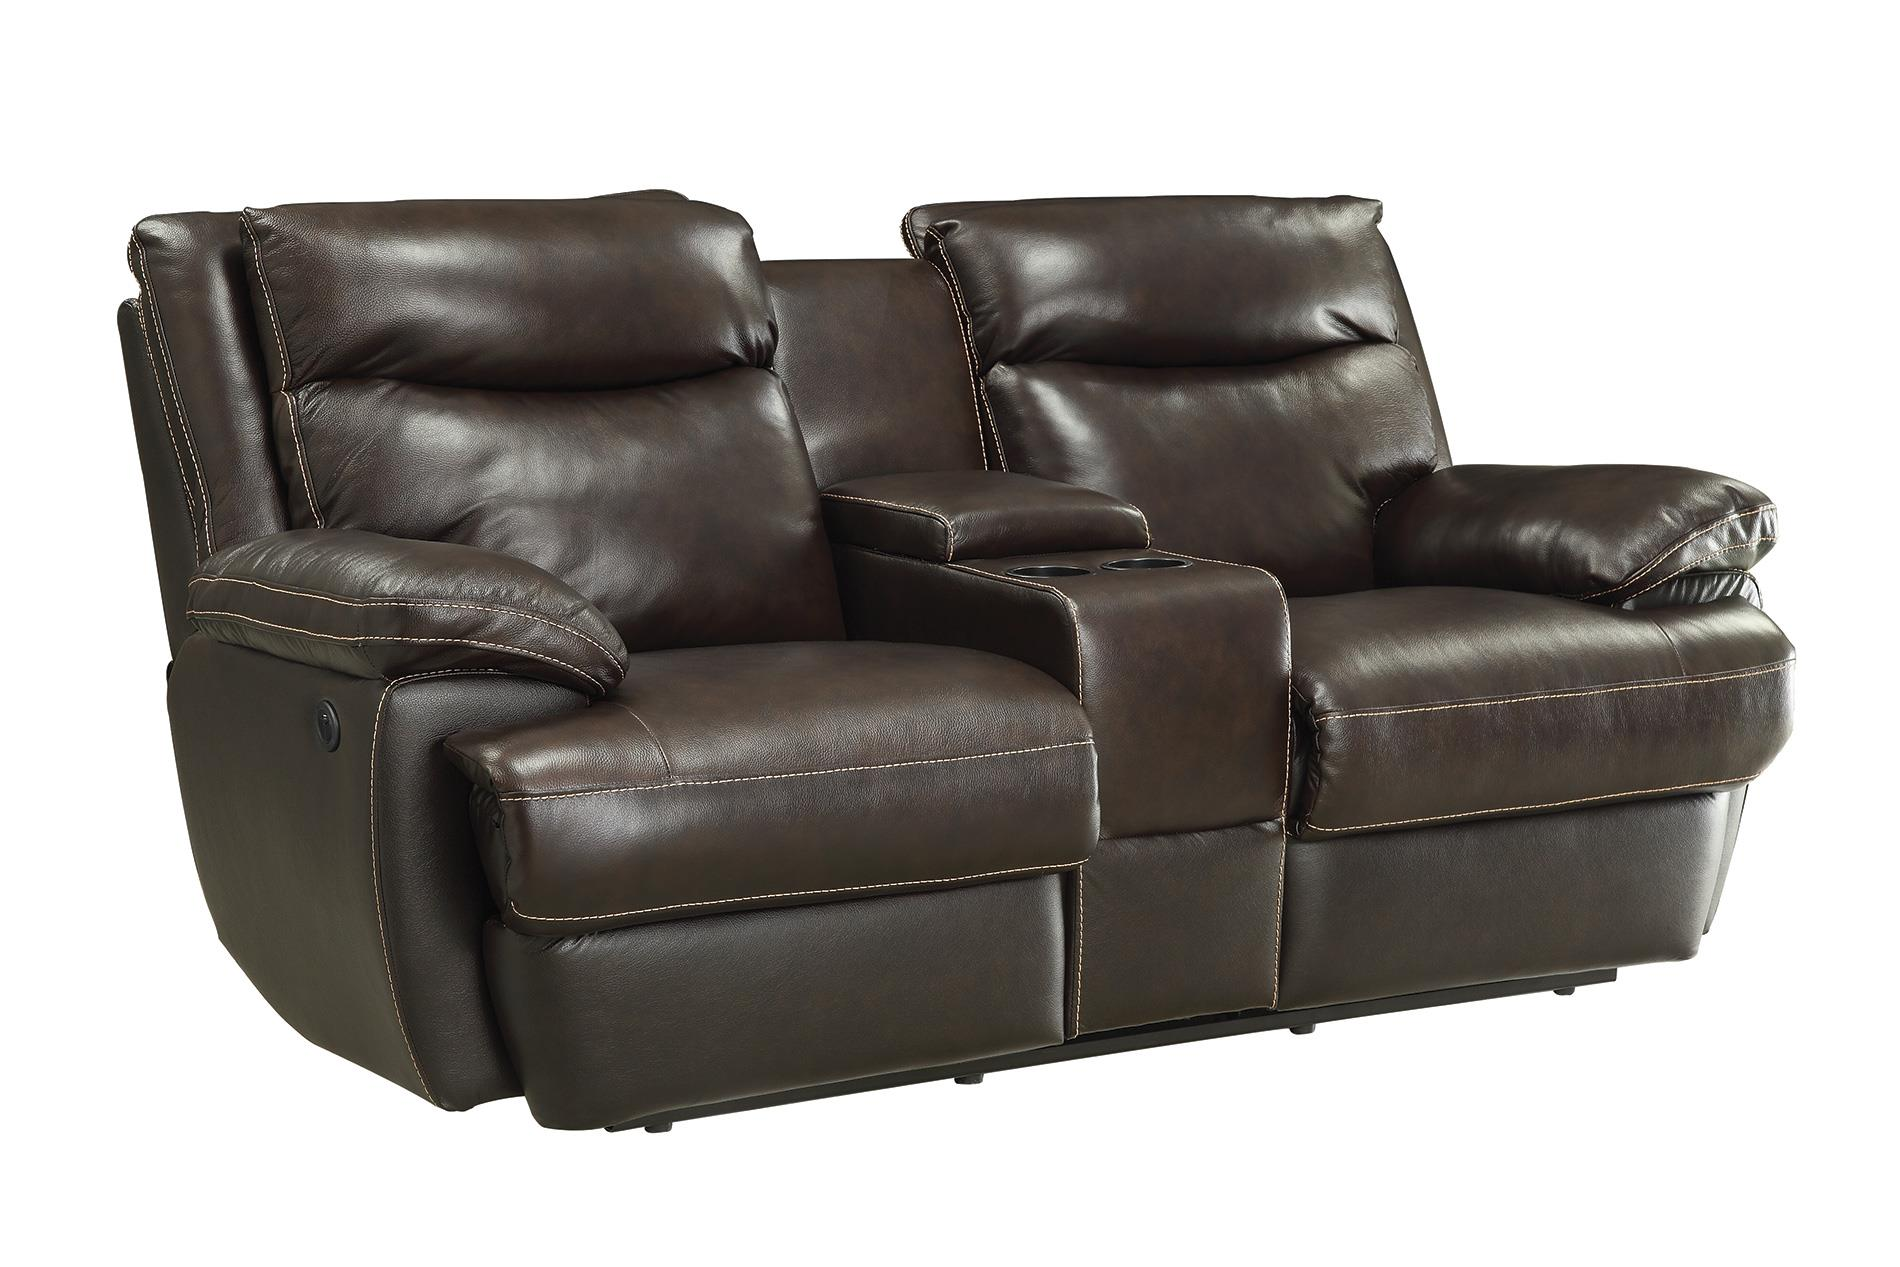 sofas and recliners addison sofa reviews macpherson casual power reclining loveseat with storage